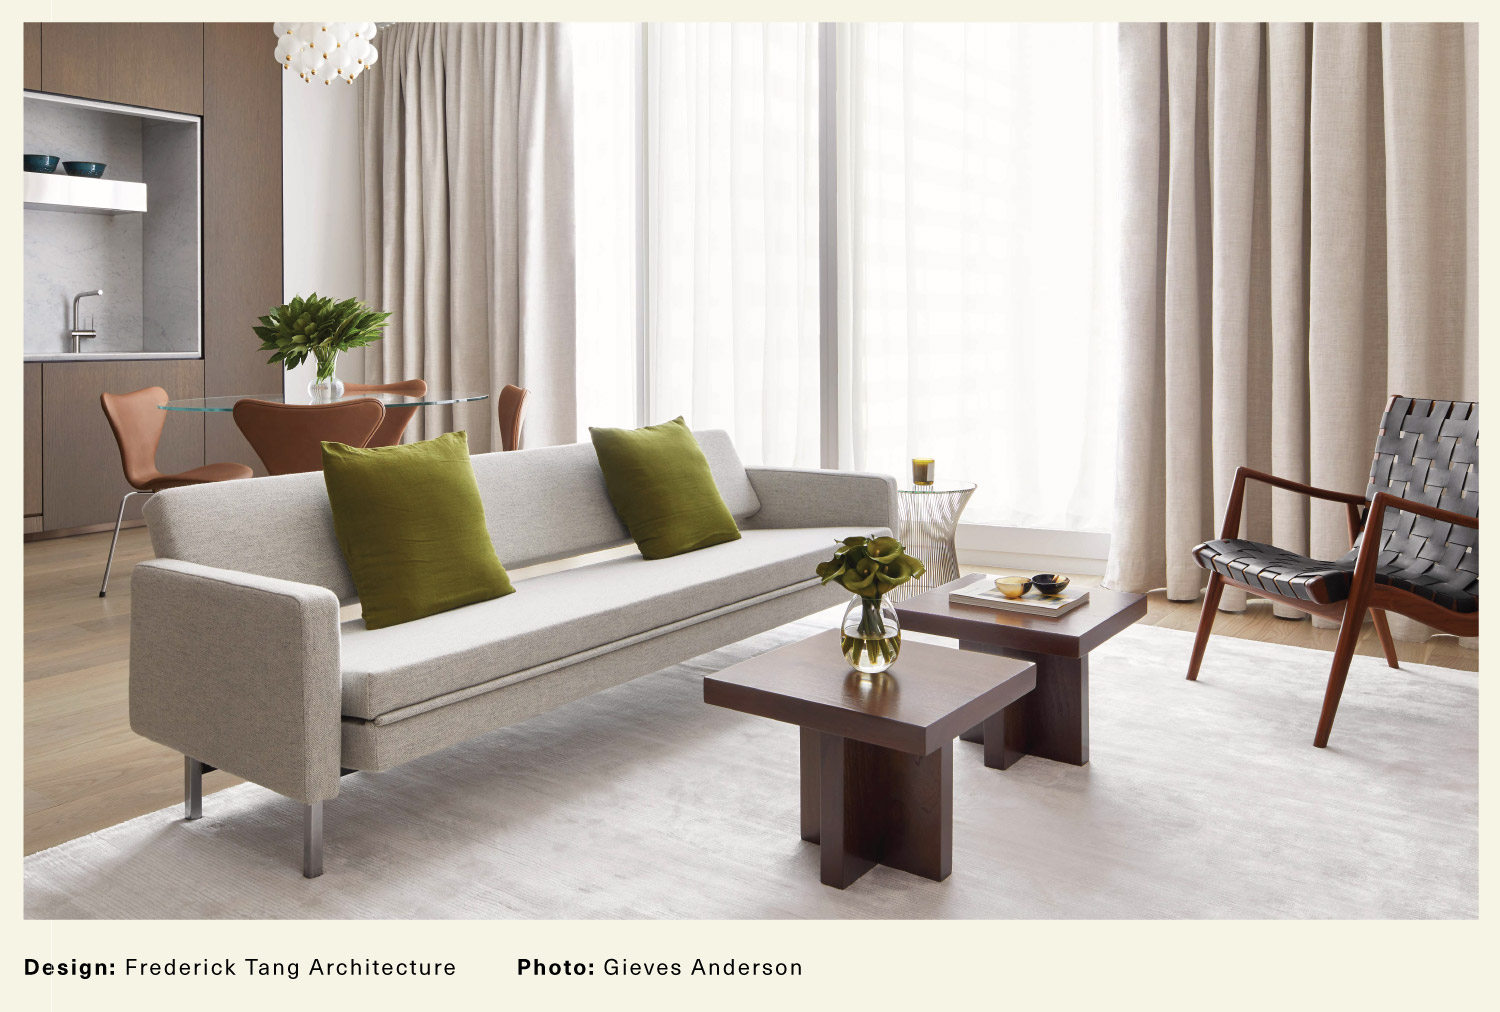 Modern living room with a gray couch, brown coffee tables, and a large window